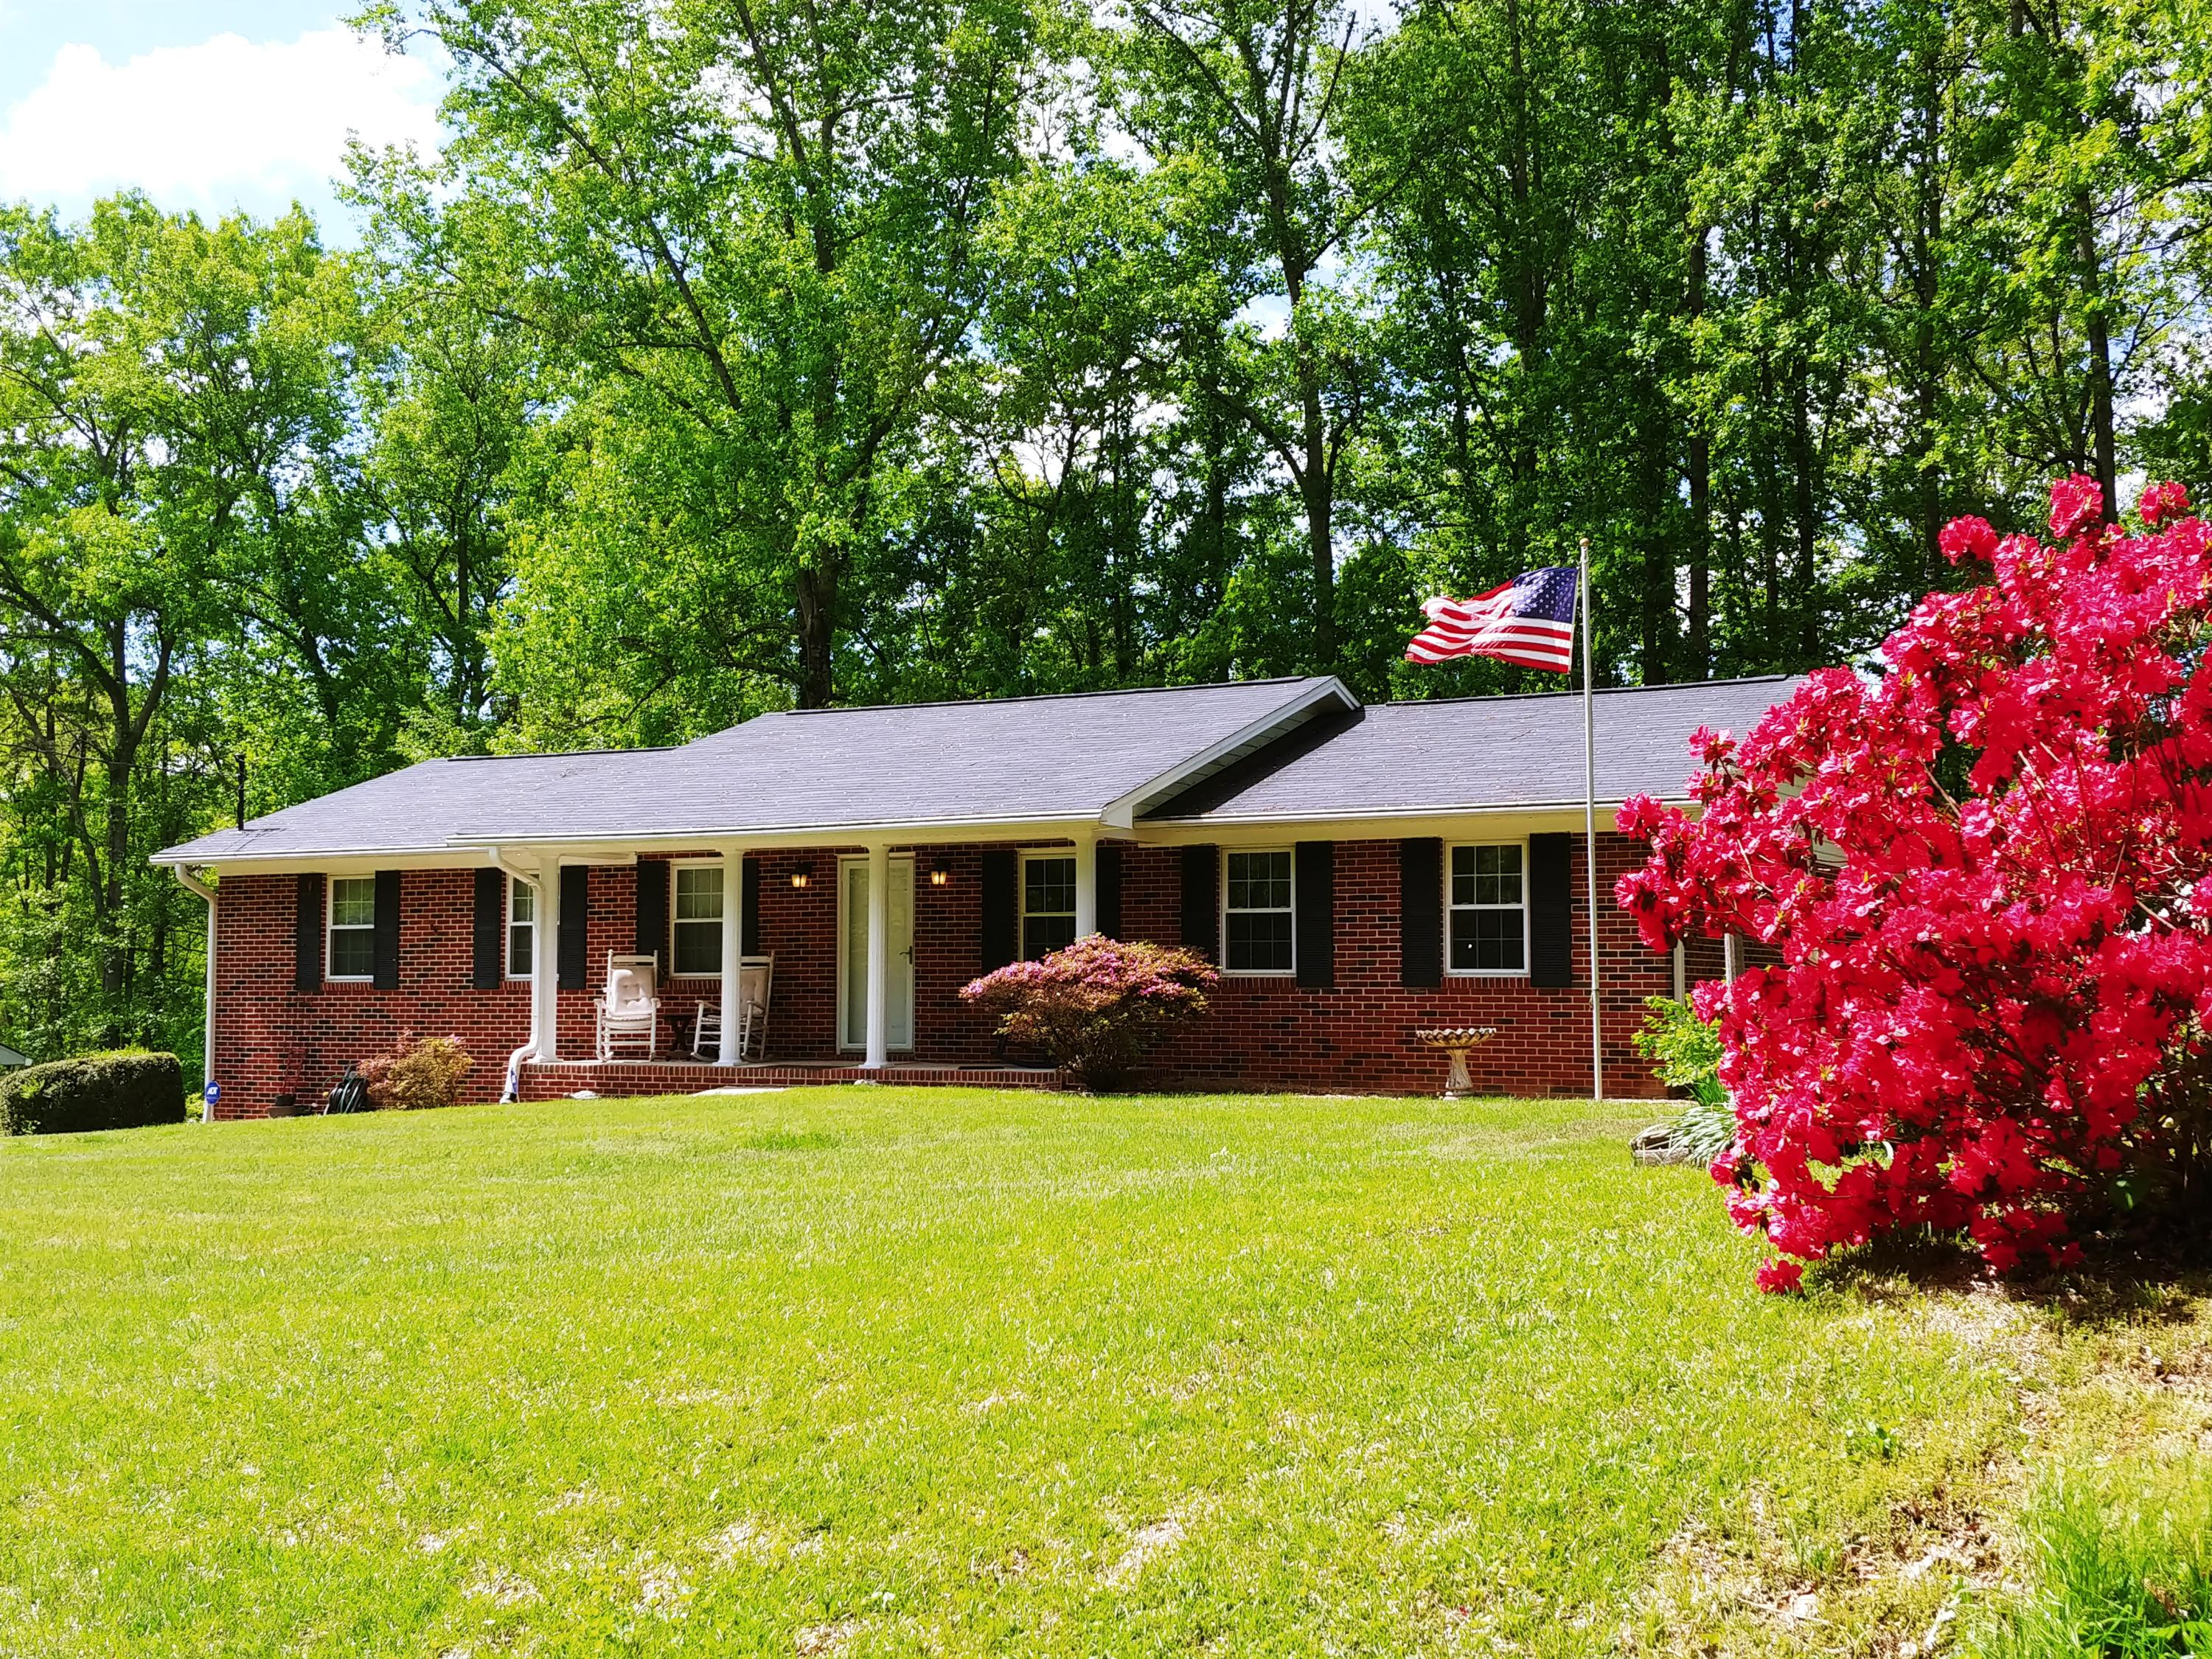 20190525001434748649000000-o Clinton anderson county homes for sale